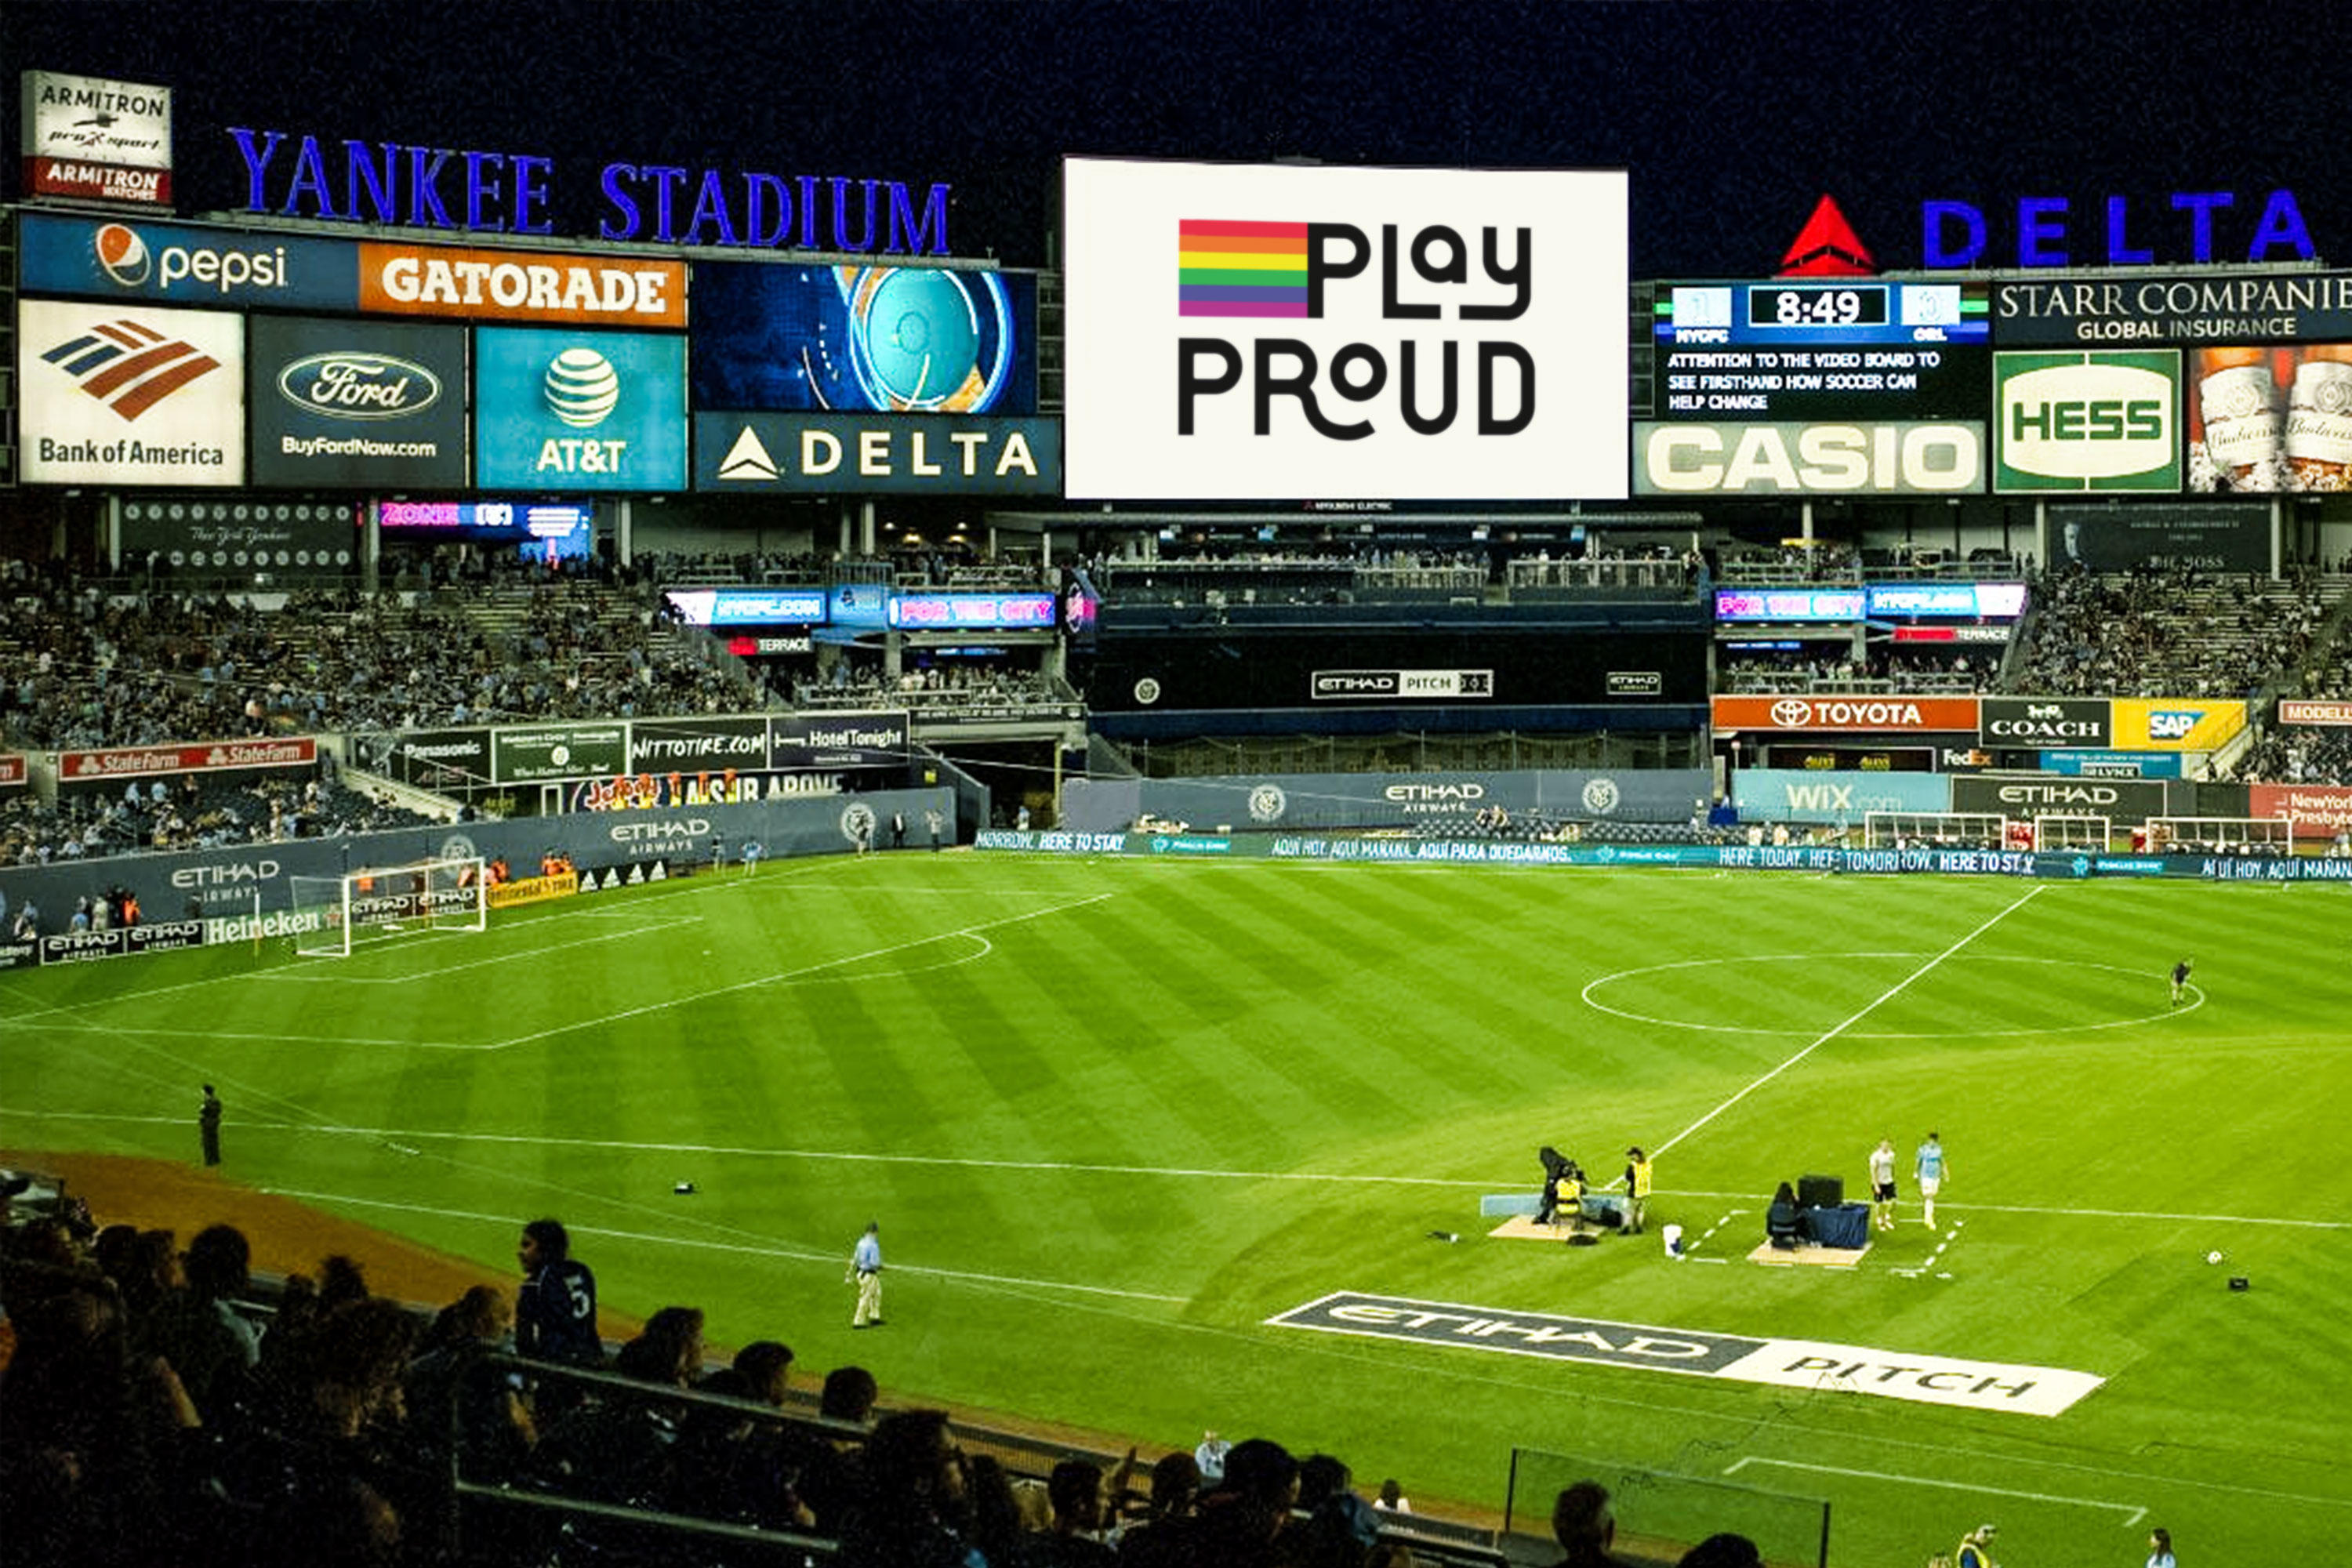 play-proud-yankee-stadium.jpg